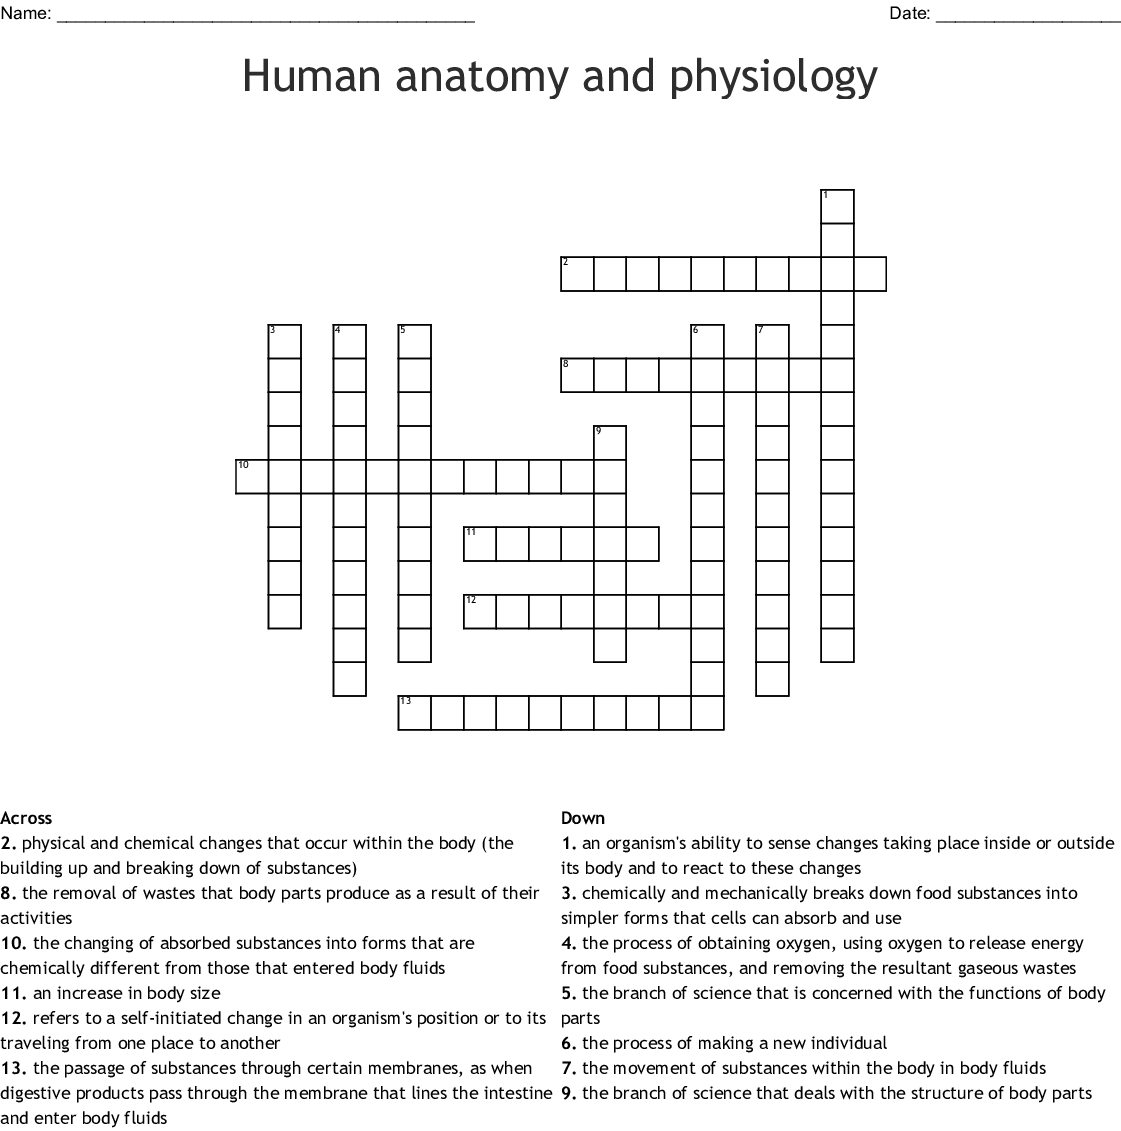 Human Anatomy And Physiology Crossword